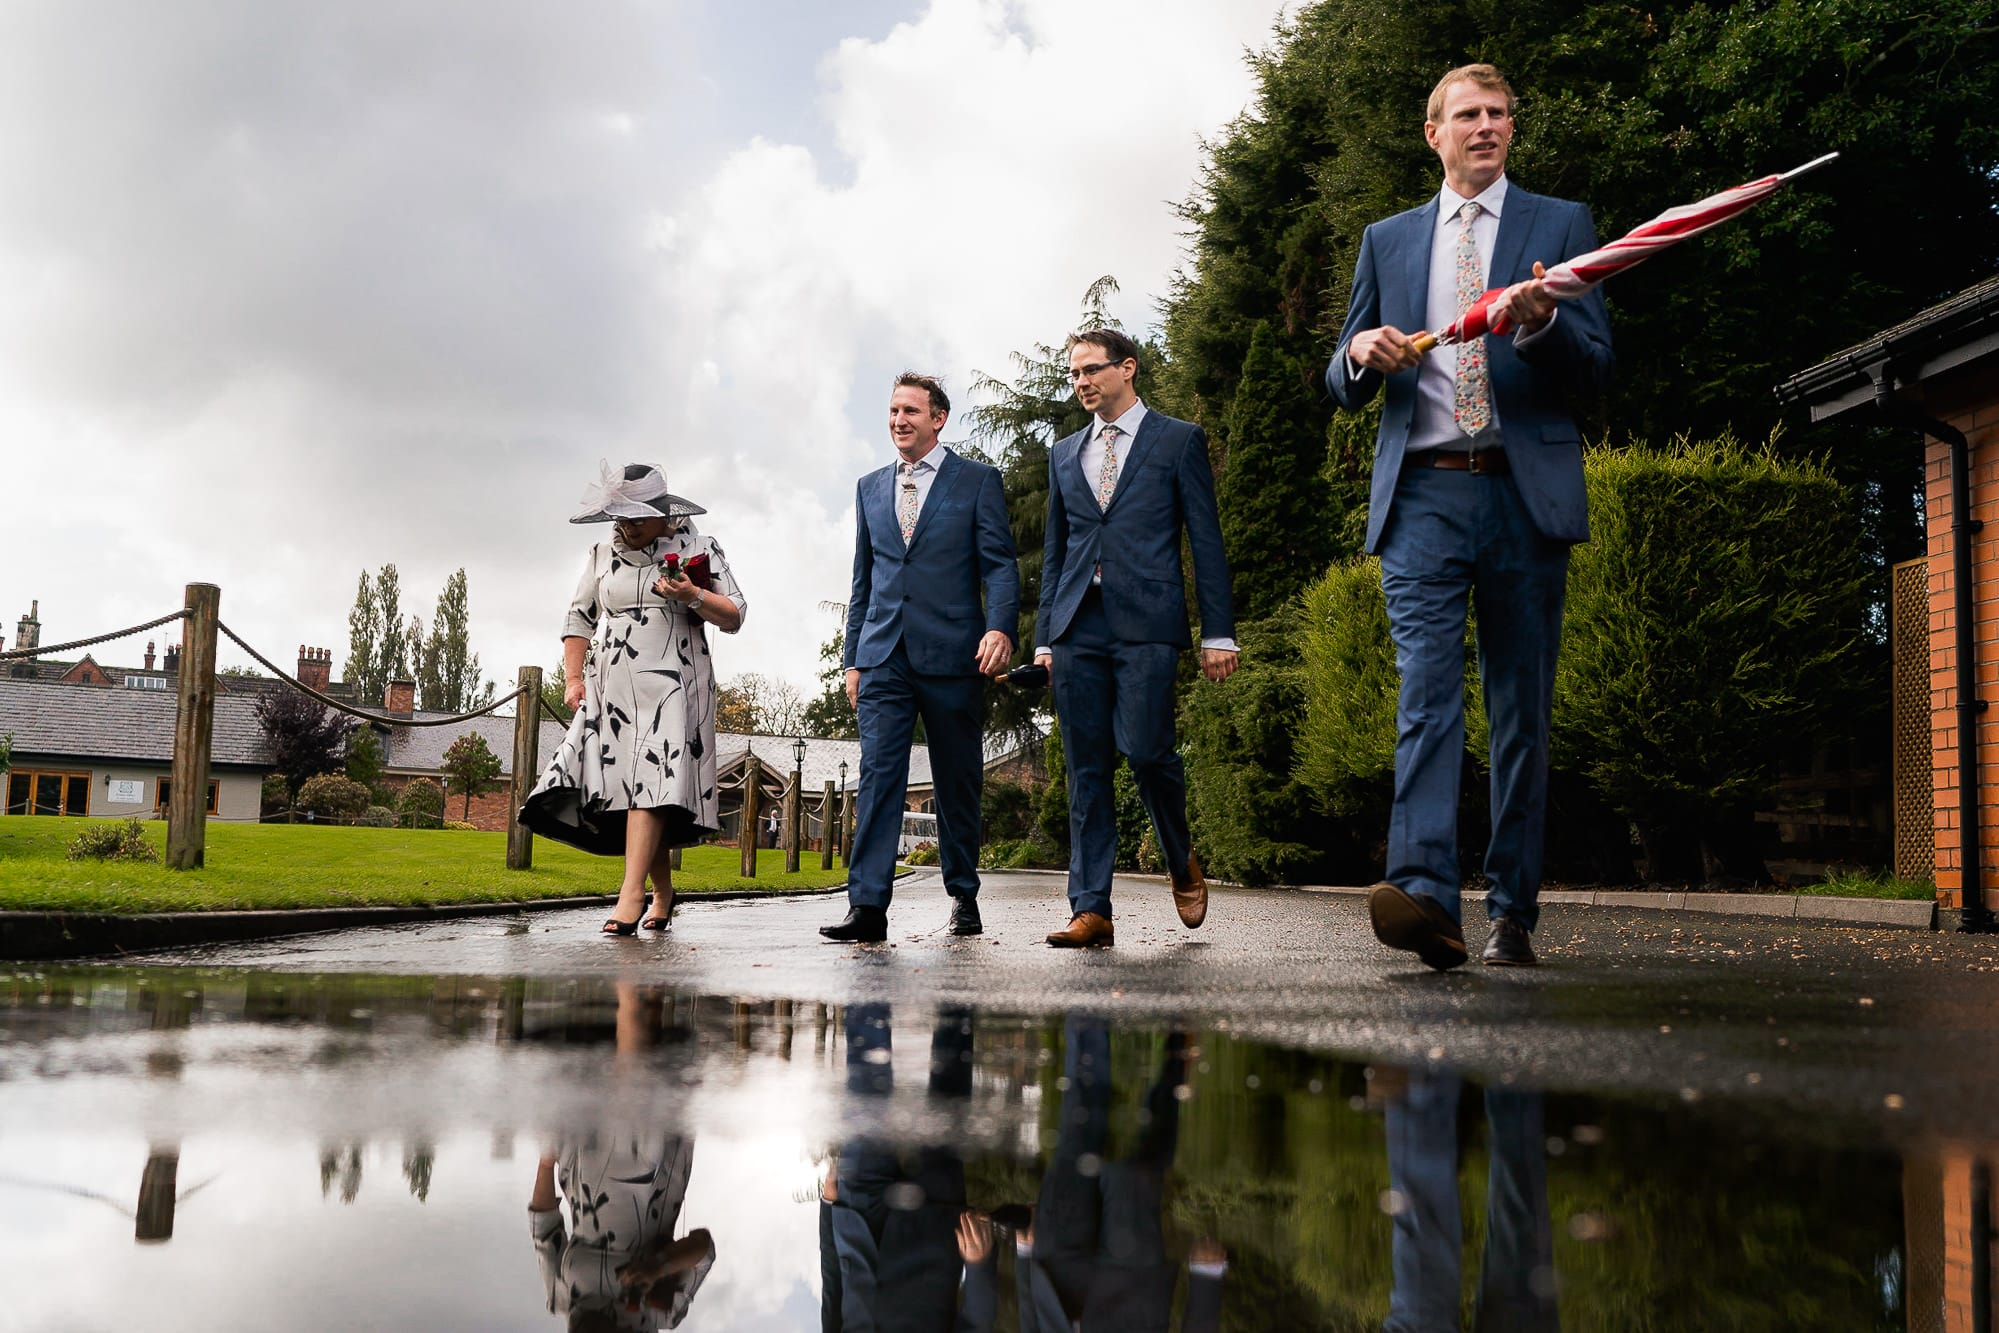 Guests walking in rain at Colshaw Hall